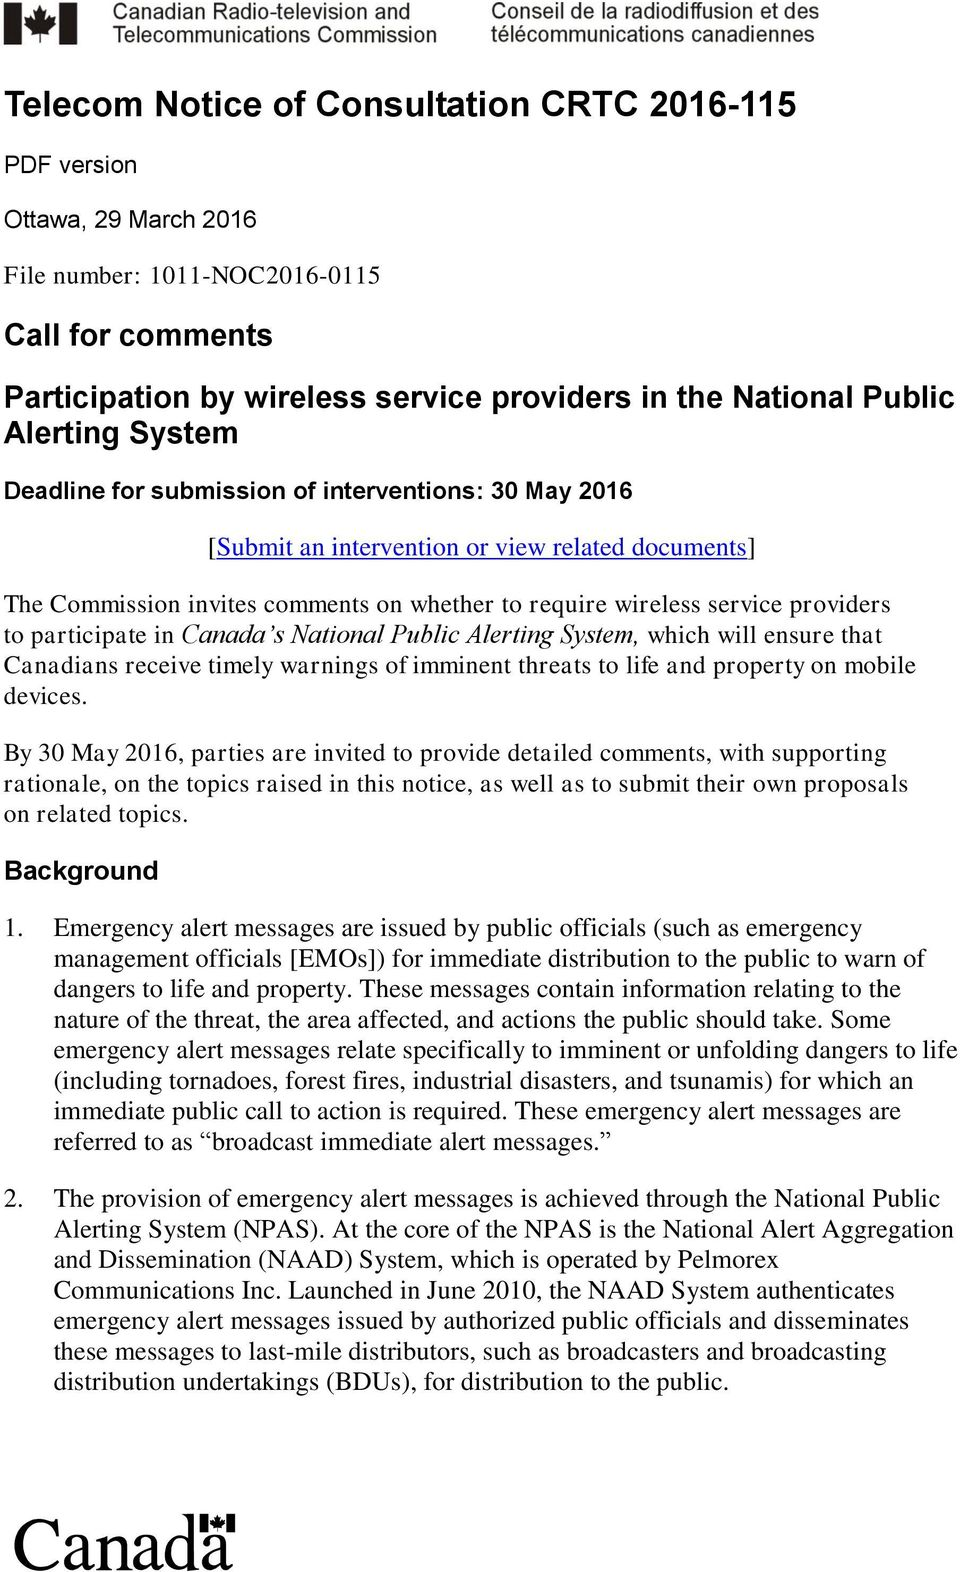 providers to participate in Canada s National Public Alerting System, which will ensure that Canadians receive timely warnings of imminent threats to life and property on mobile devices.